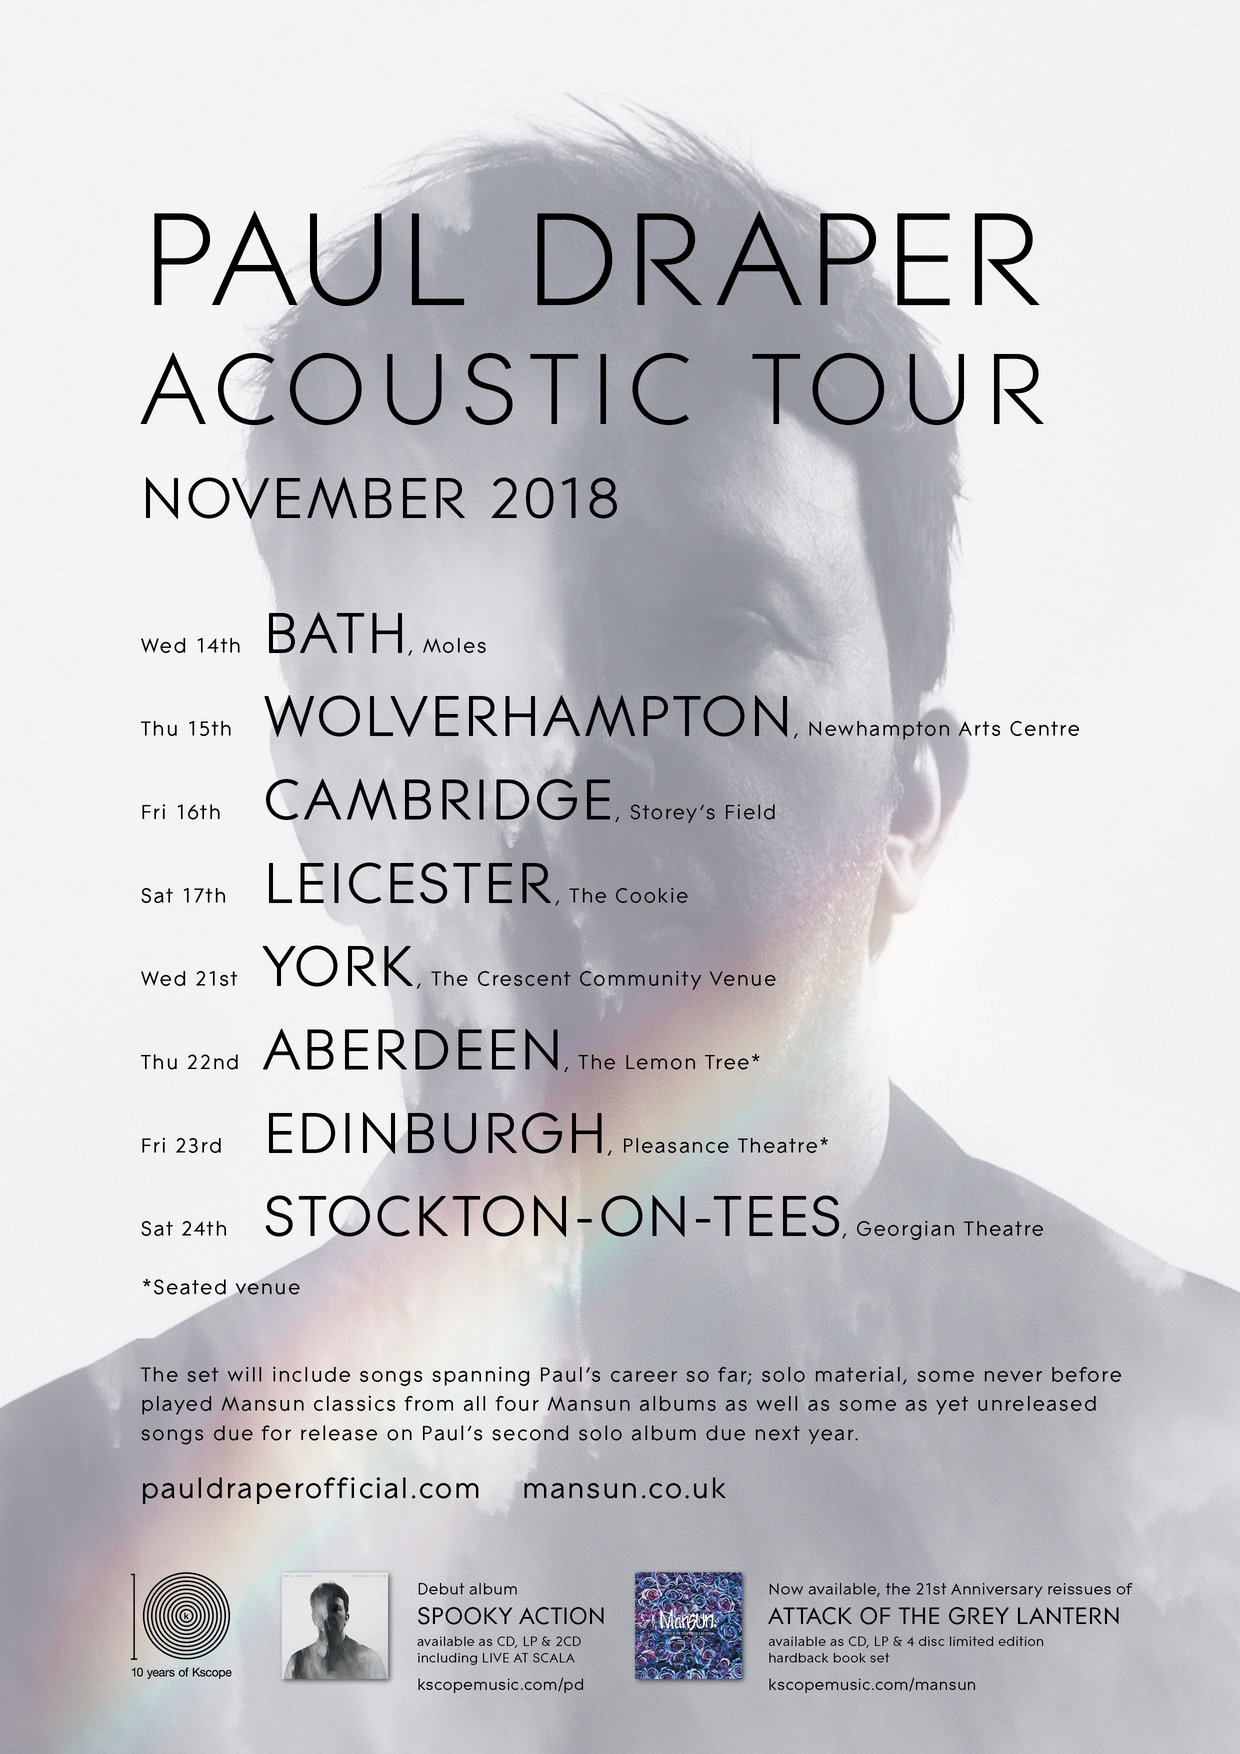 paul-draper-acoustic-tour-poster-image-2